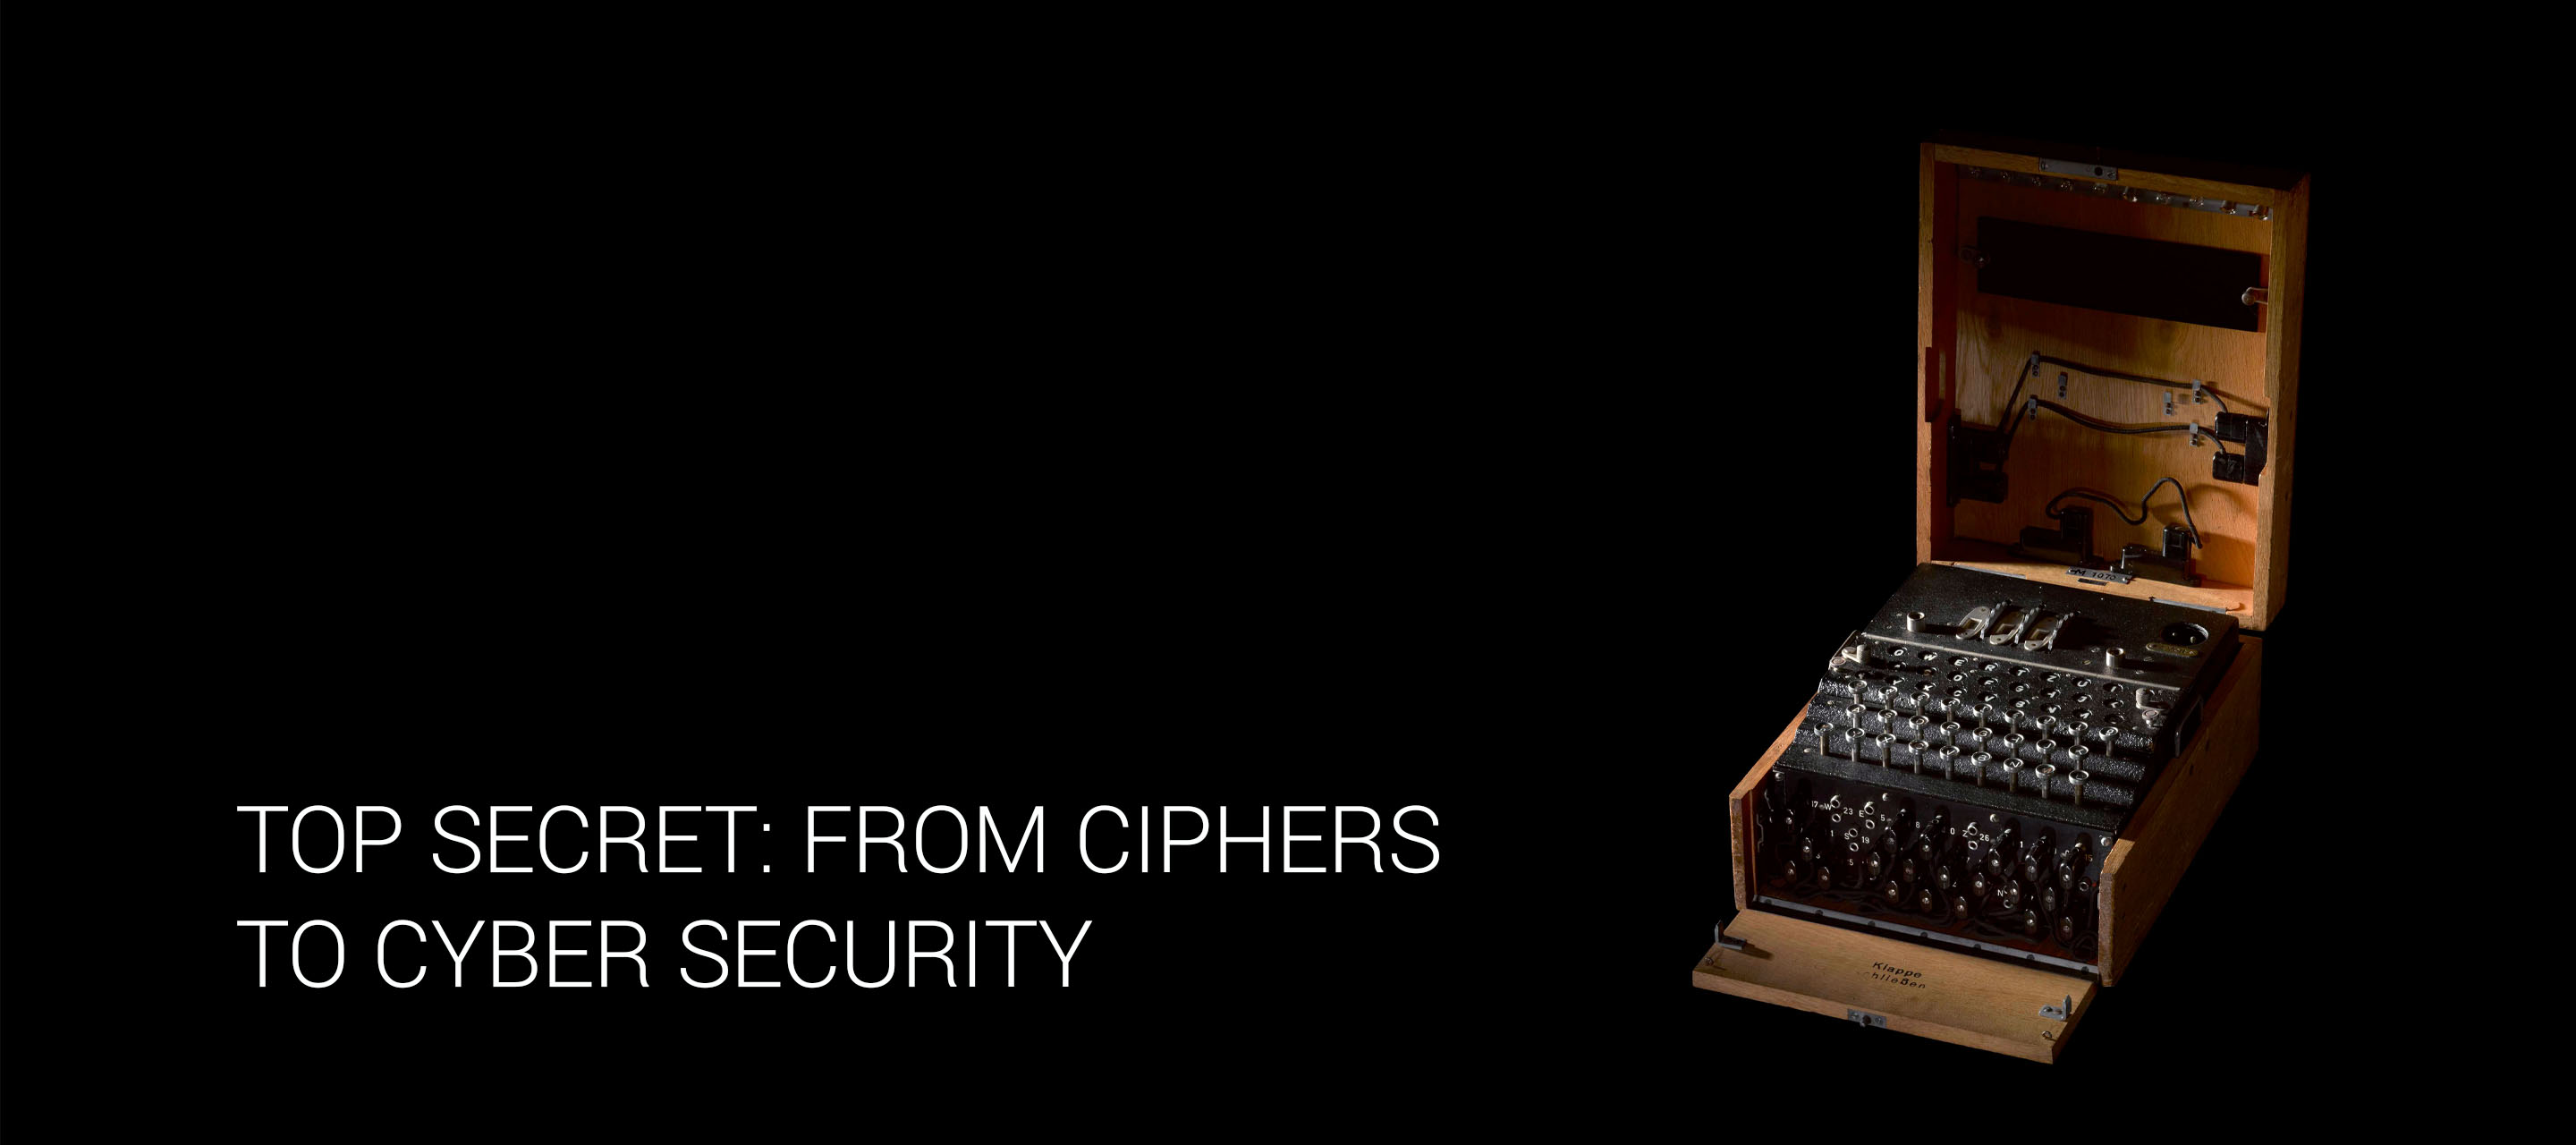 QinetiQ is very proud to be the Major Sponsor of the Science Museum's new exhibition, Top Secret: From Ciphers to Cyber Security